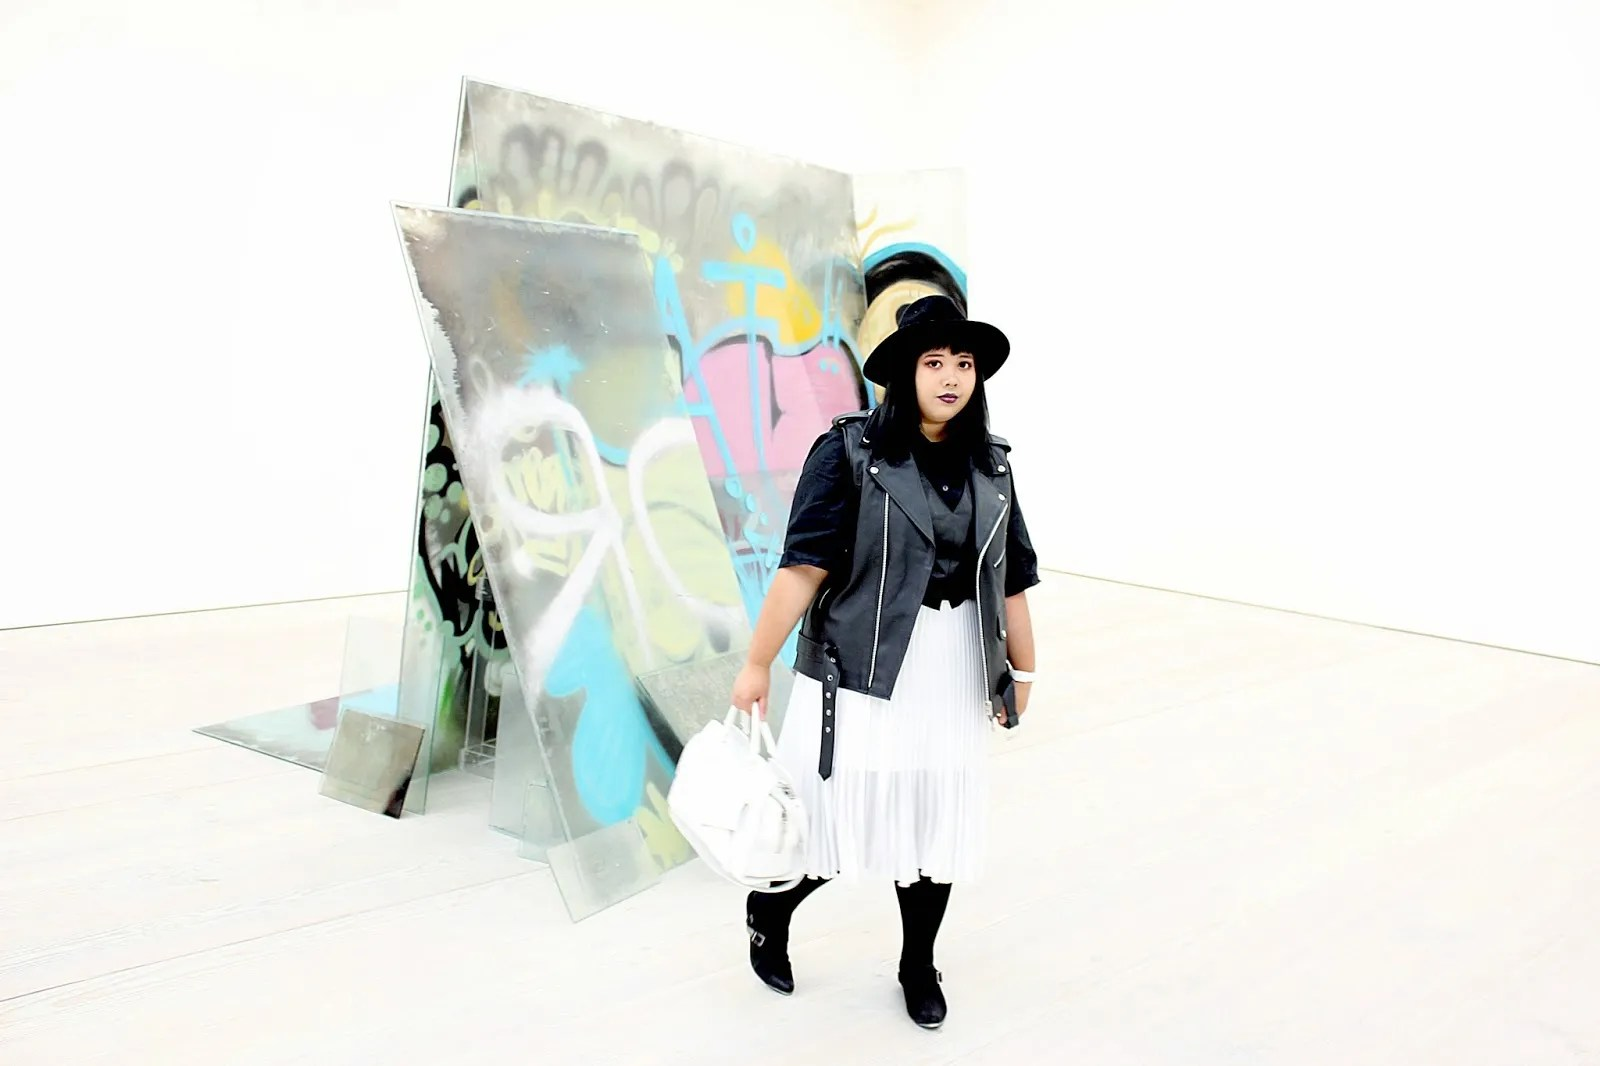 plus size punk outfit with black leather vest, black top, white chiffon skirt, black hat